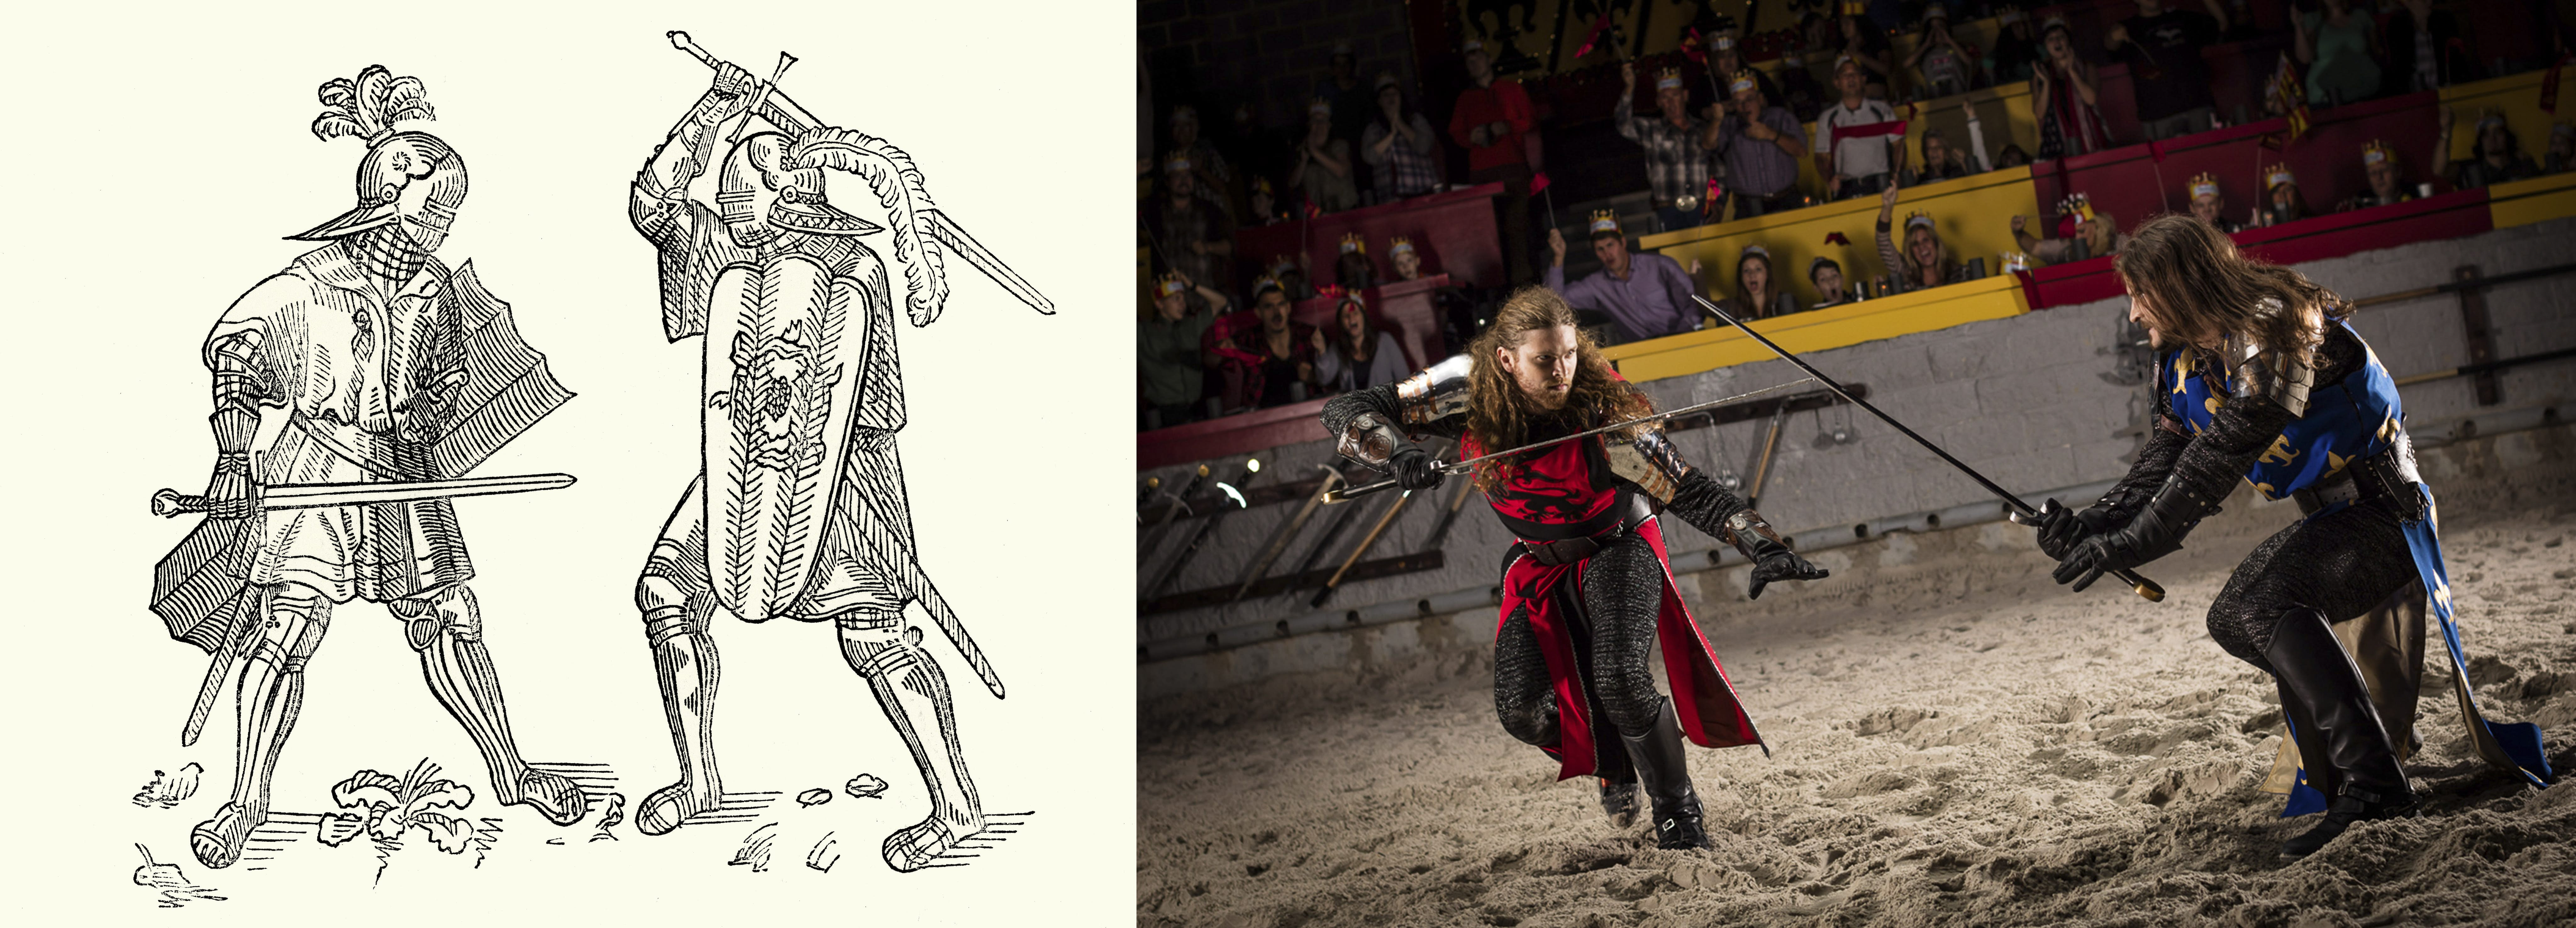 The left side is a black and white illustration of two knights battling from the Medieval Era. The right side is a depiction of that image during a live Medieval Times show.